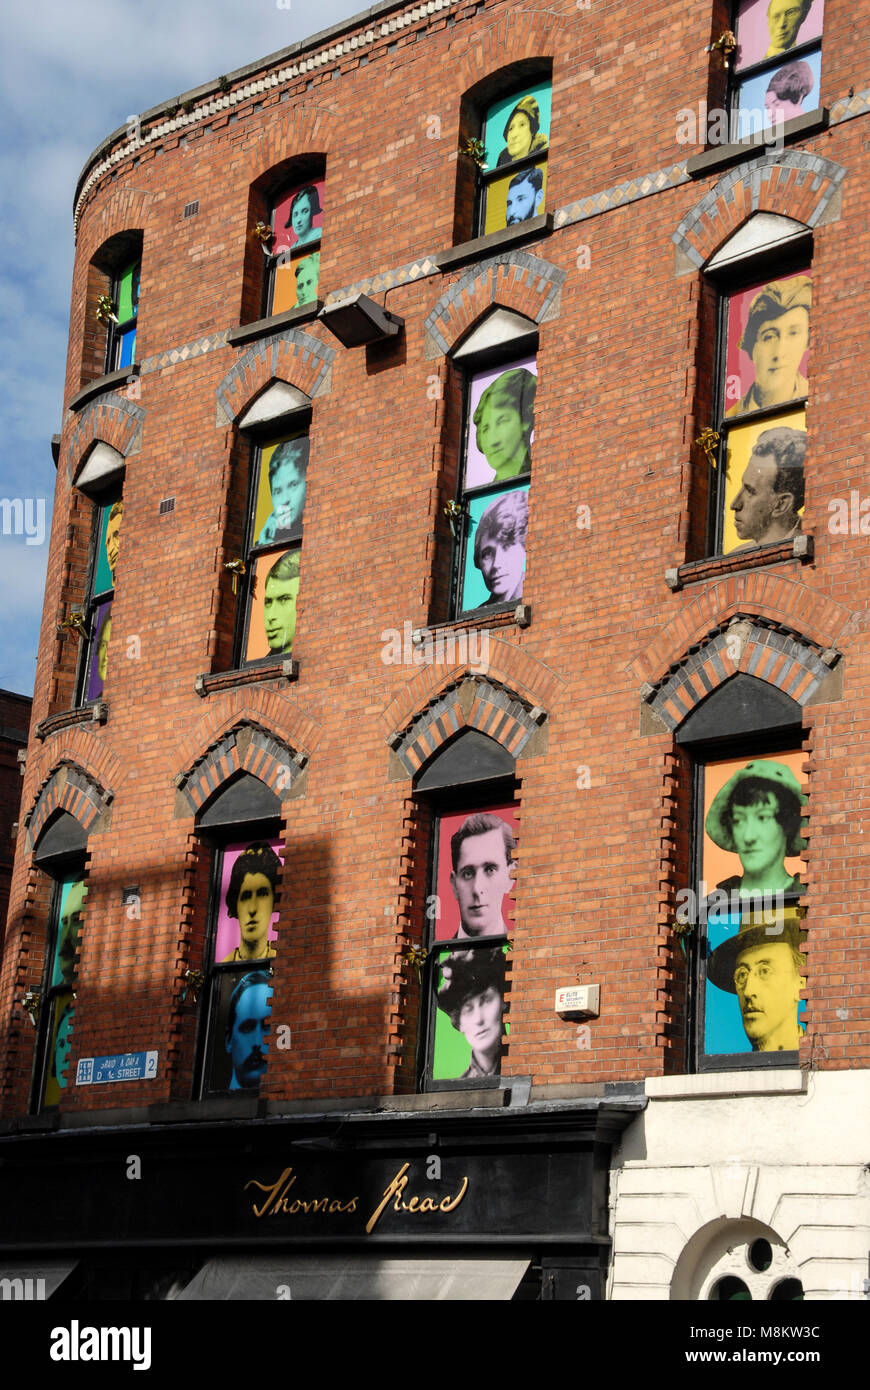 Portraits of members of the 1916 Irish Citizens Army in the windows of a building in Parliament Street, Dublin - Stock Image